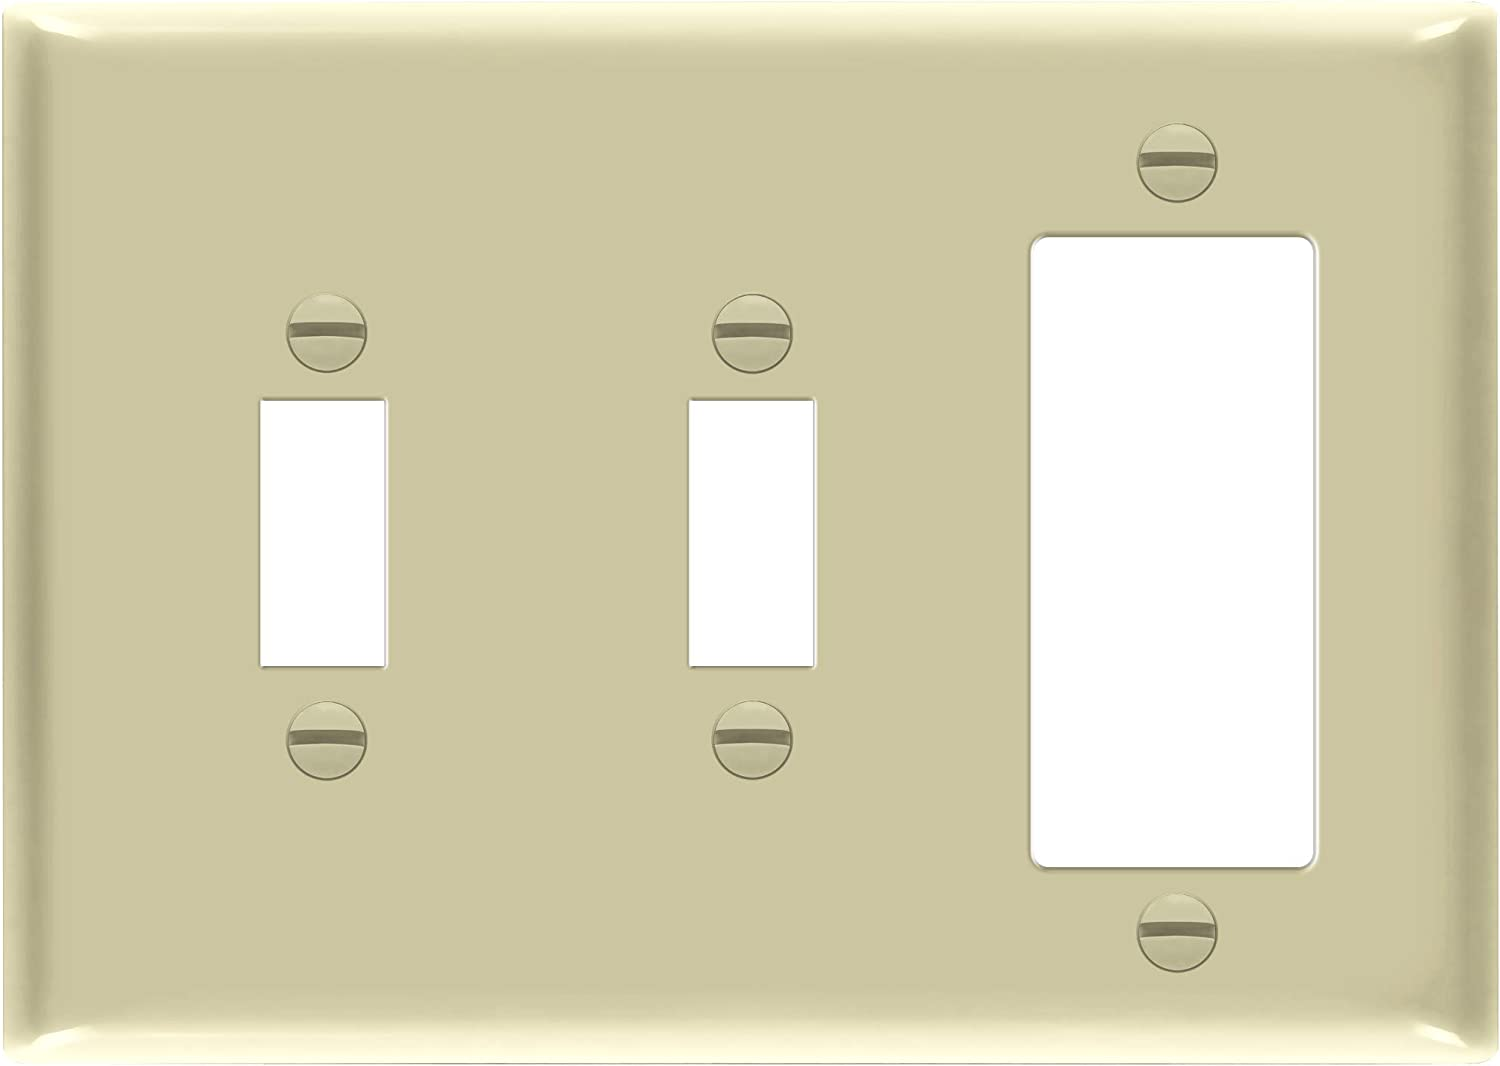 ENERLITES Combination Decorator/Toggle Light Switch Wall Plate, Standard Size 3-Gang, Polycarbonate Thermoplastic, 881231-I, Ivory